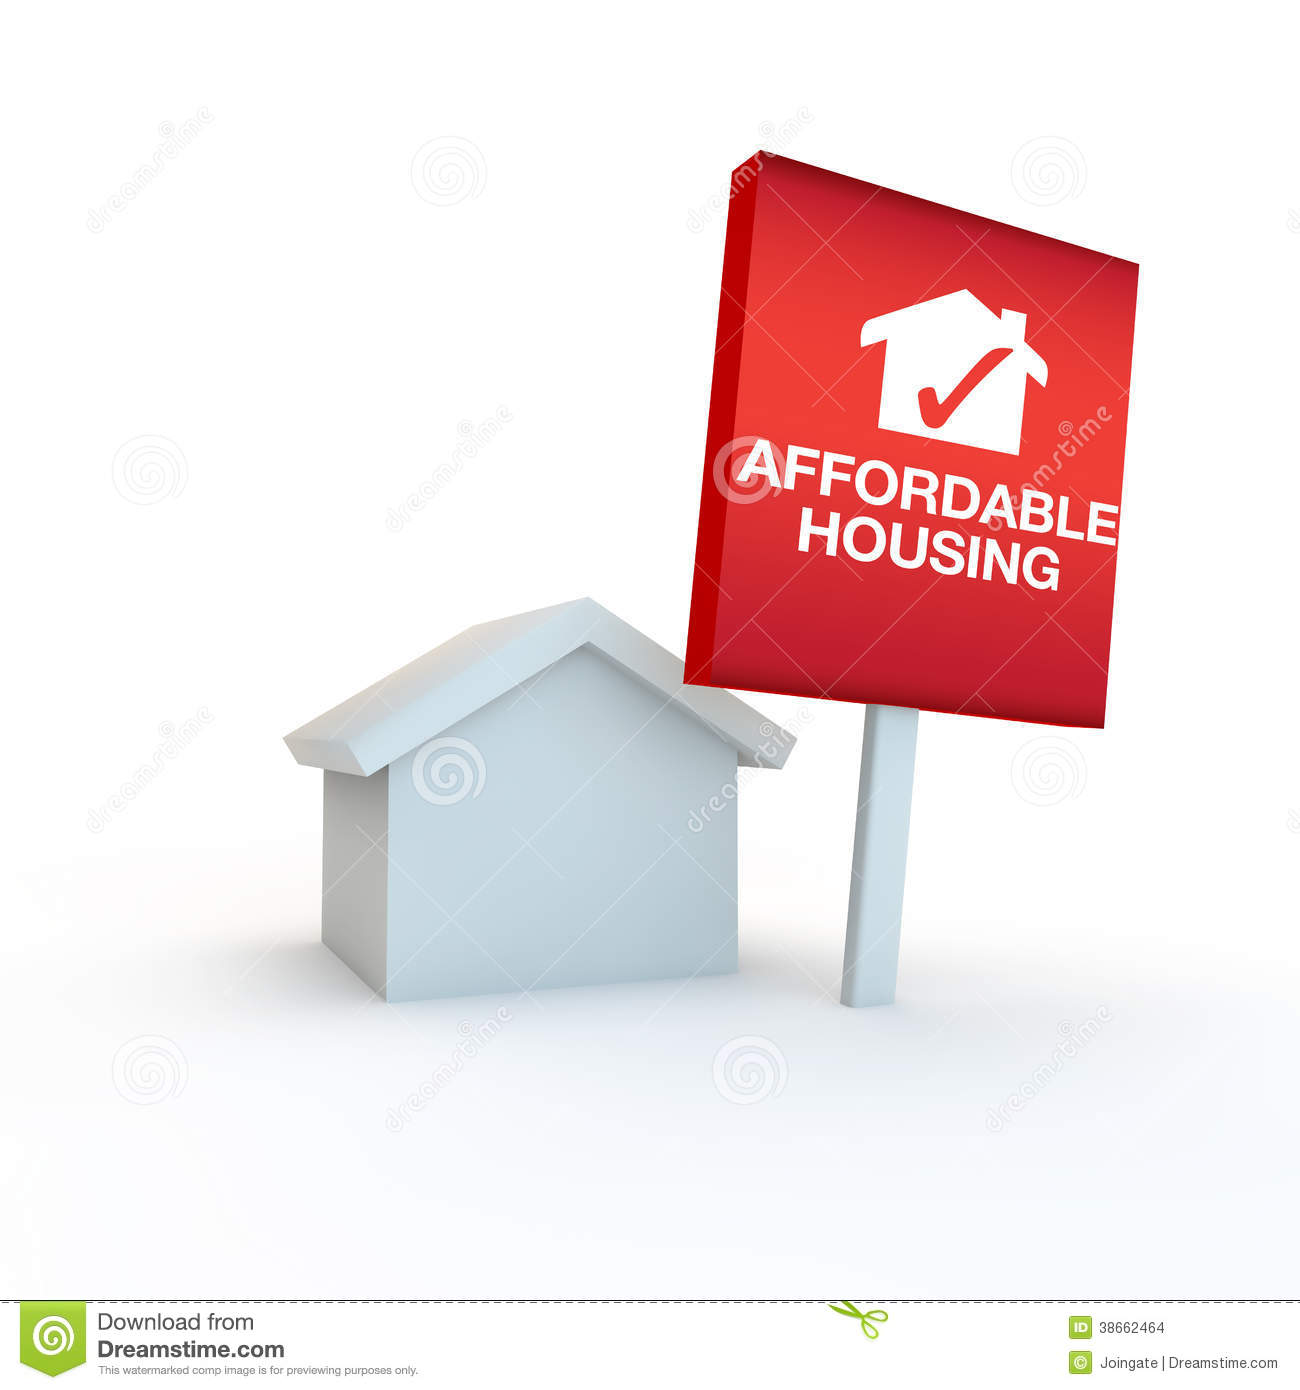 Affordable housing clipart.